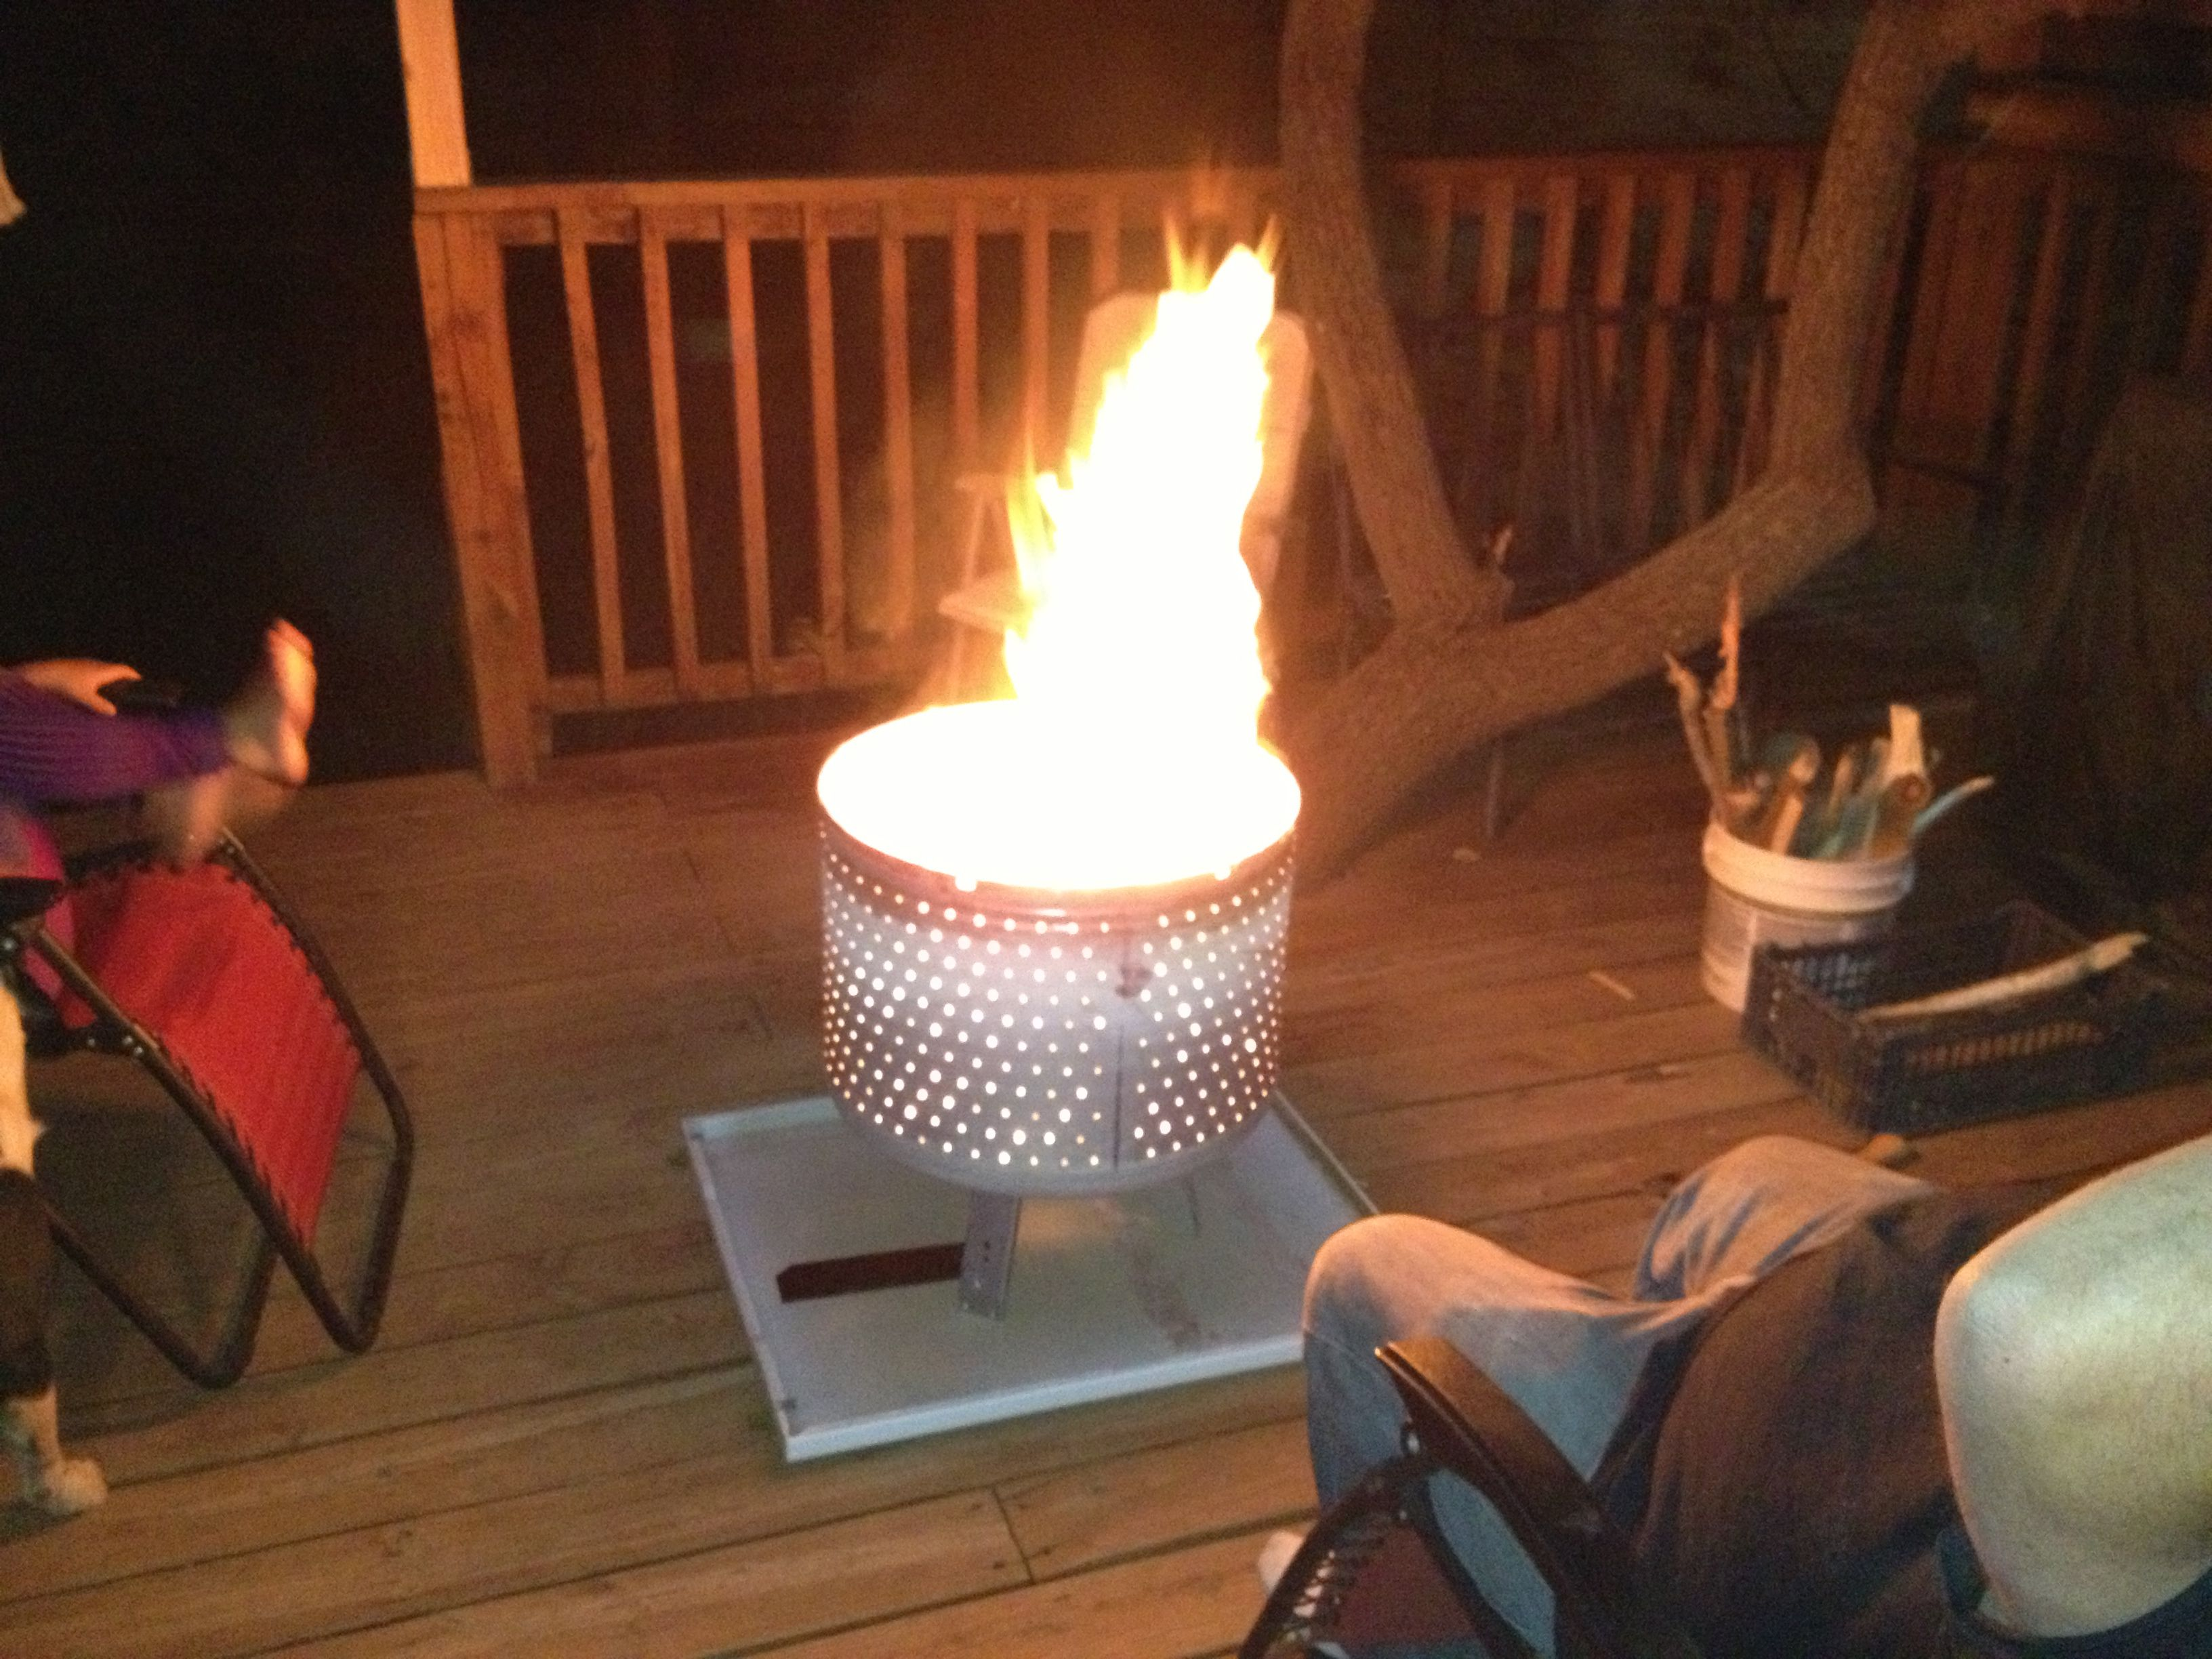 f455257a8cfbbecae228bab2a1498666 Top Result 50 Awesome Rust Proof Fire Pit Pic 2018 Iqt4